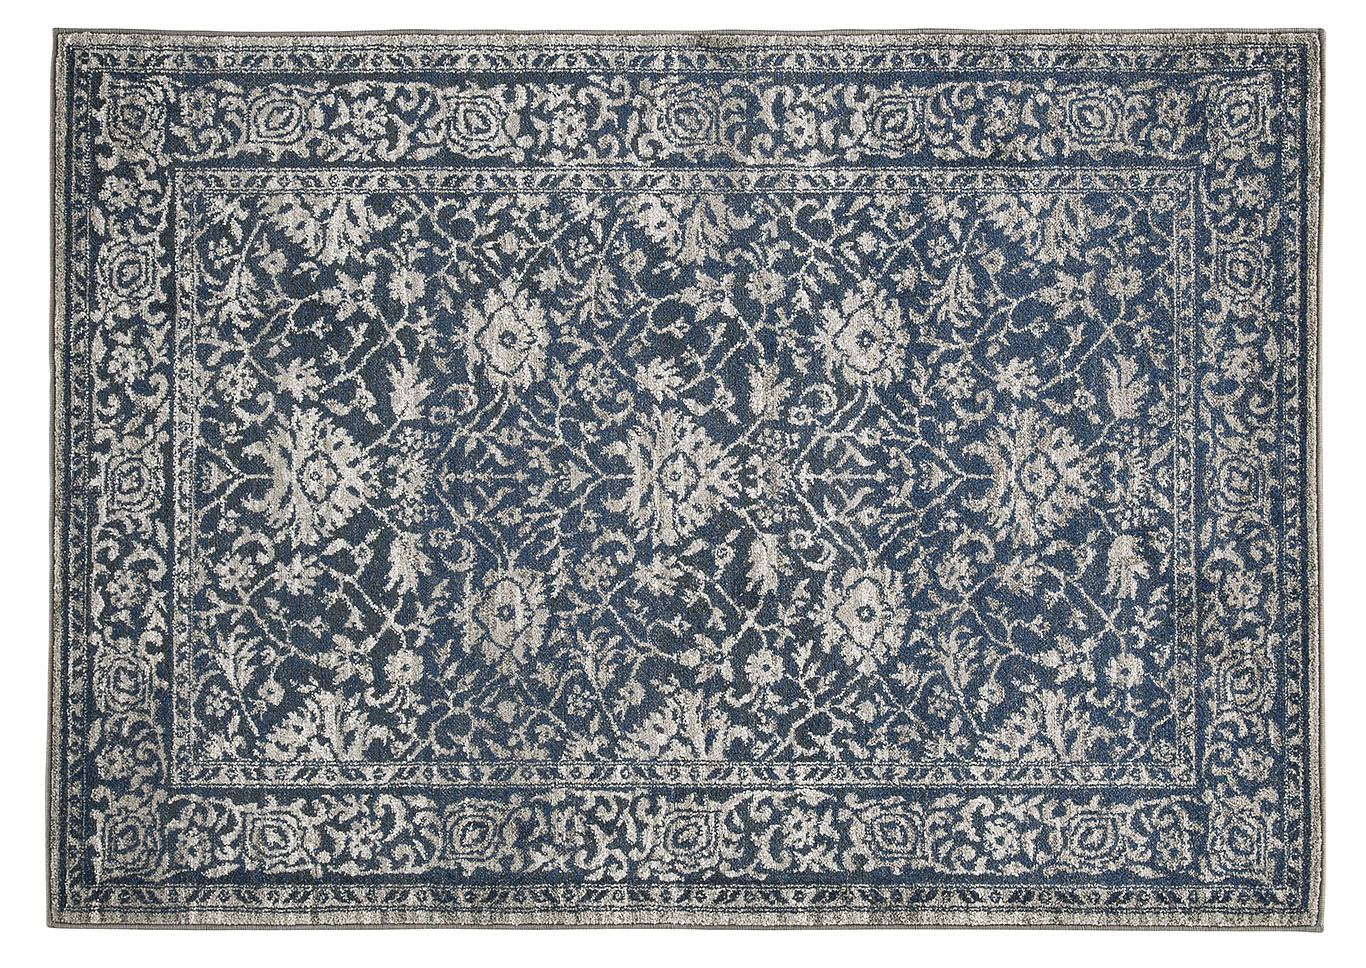 Maxton Blue/Gray Large Rug,Signature Design By Ashley